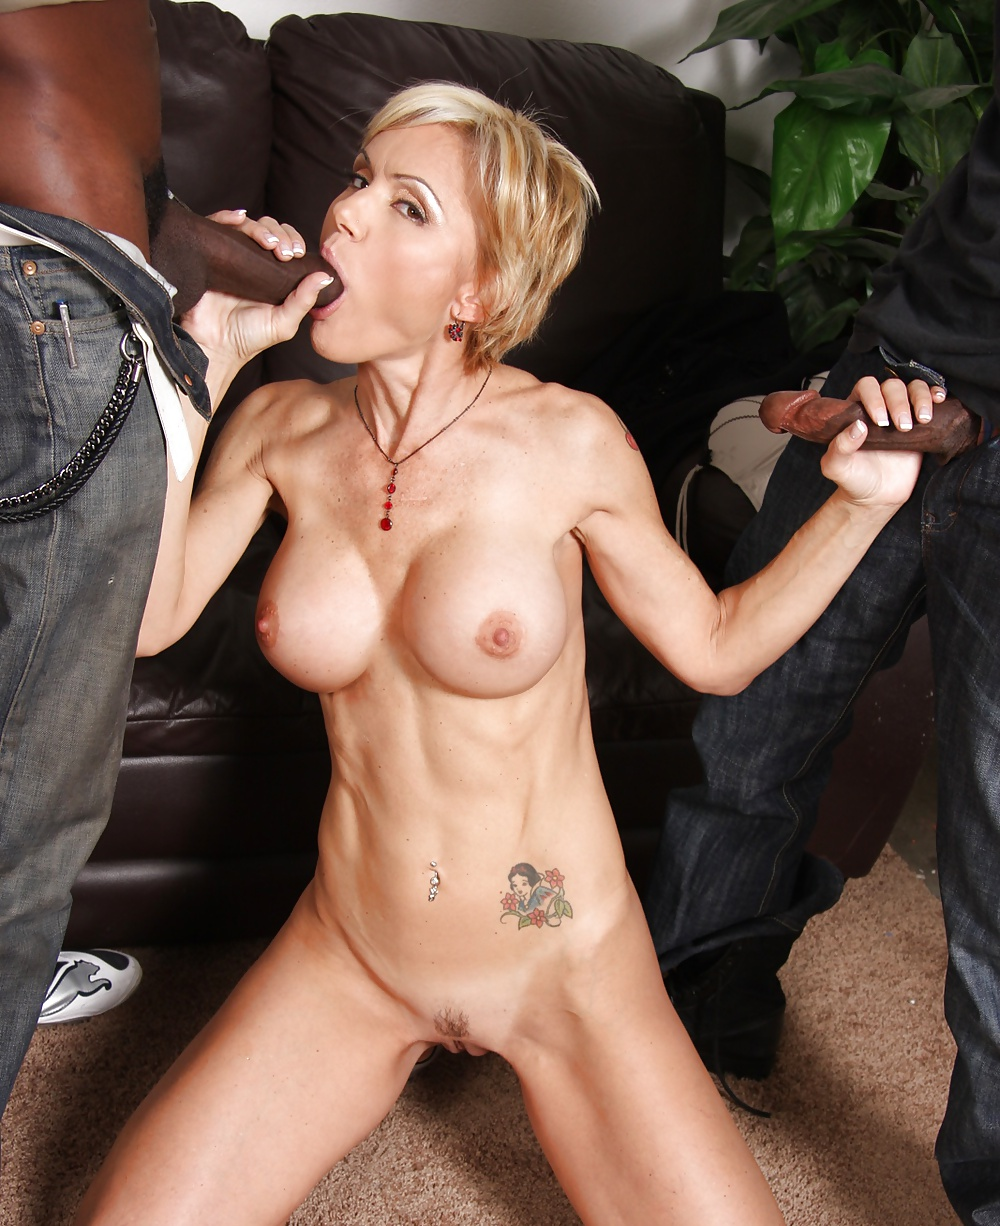 Milfswantbigcock cameron v fighthdsex glasses xo free pornpics sexphotos xxximages hq gallery